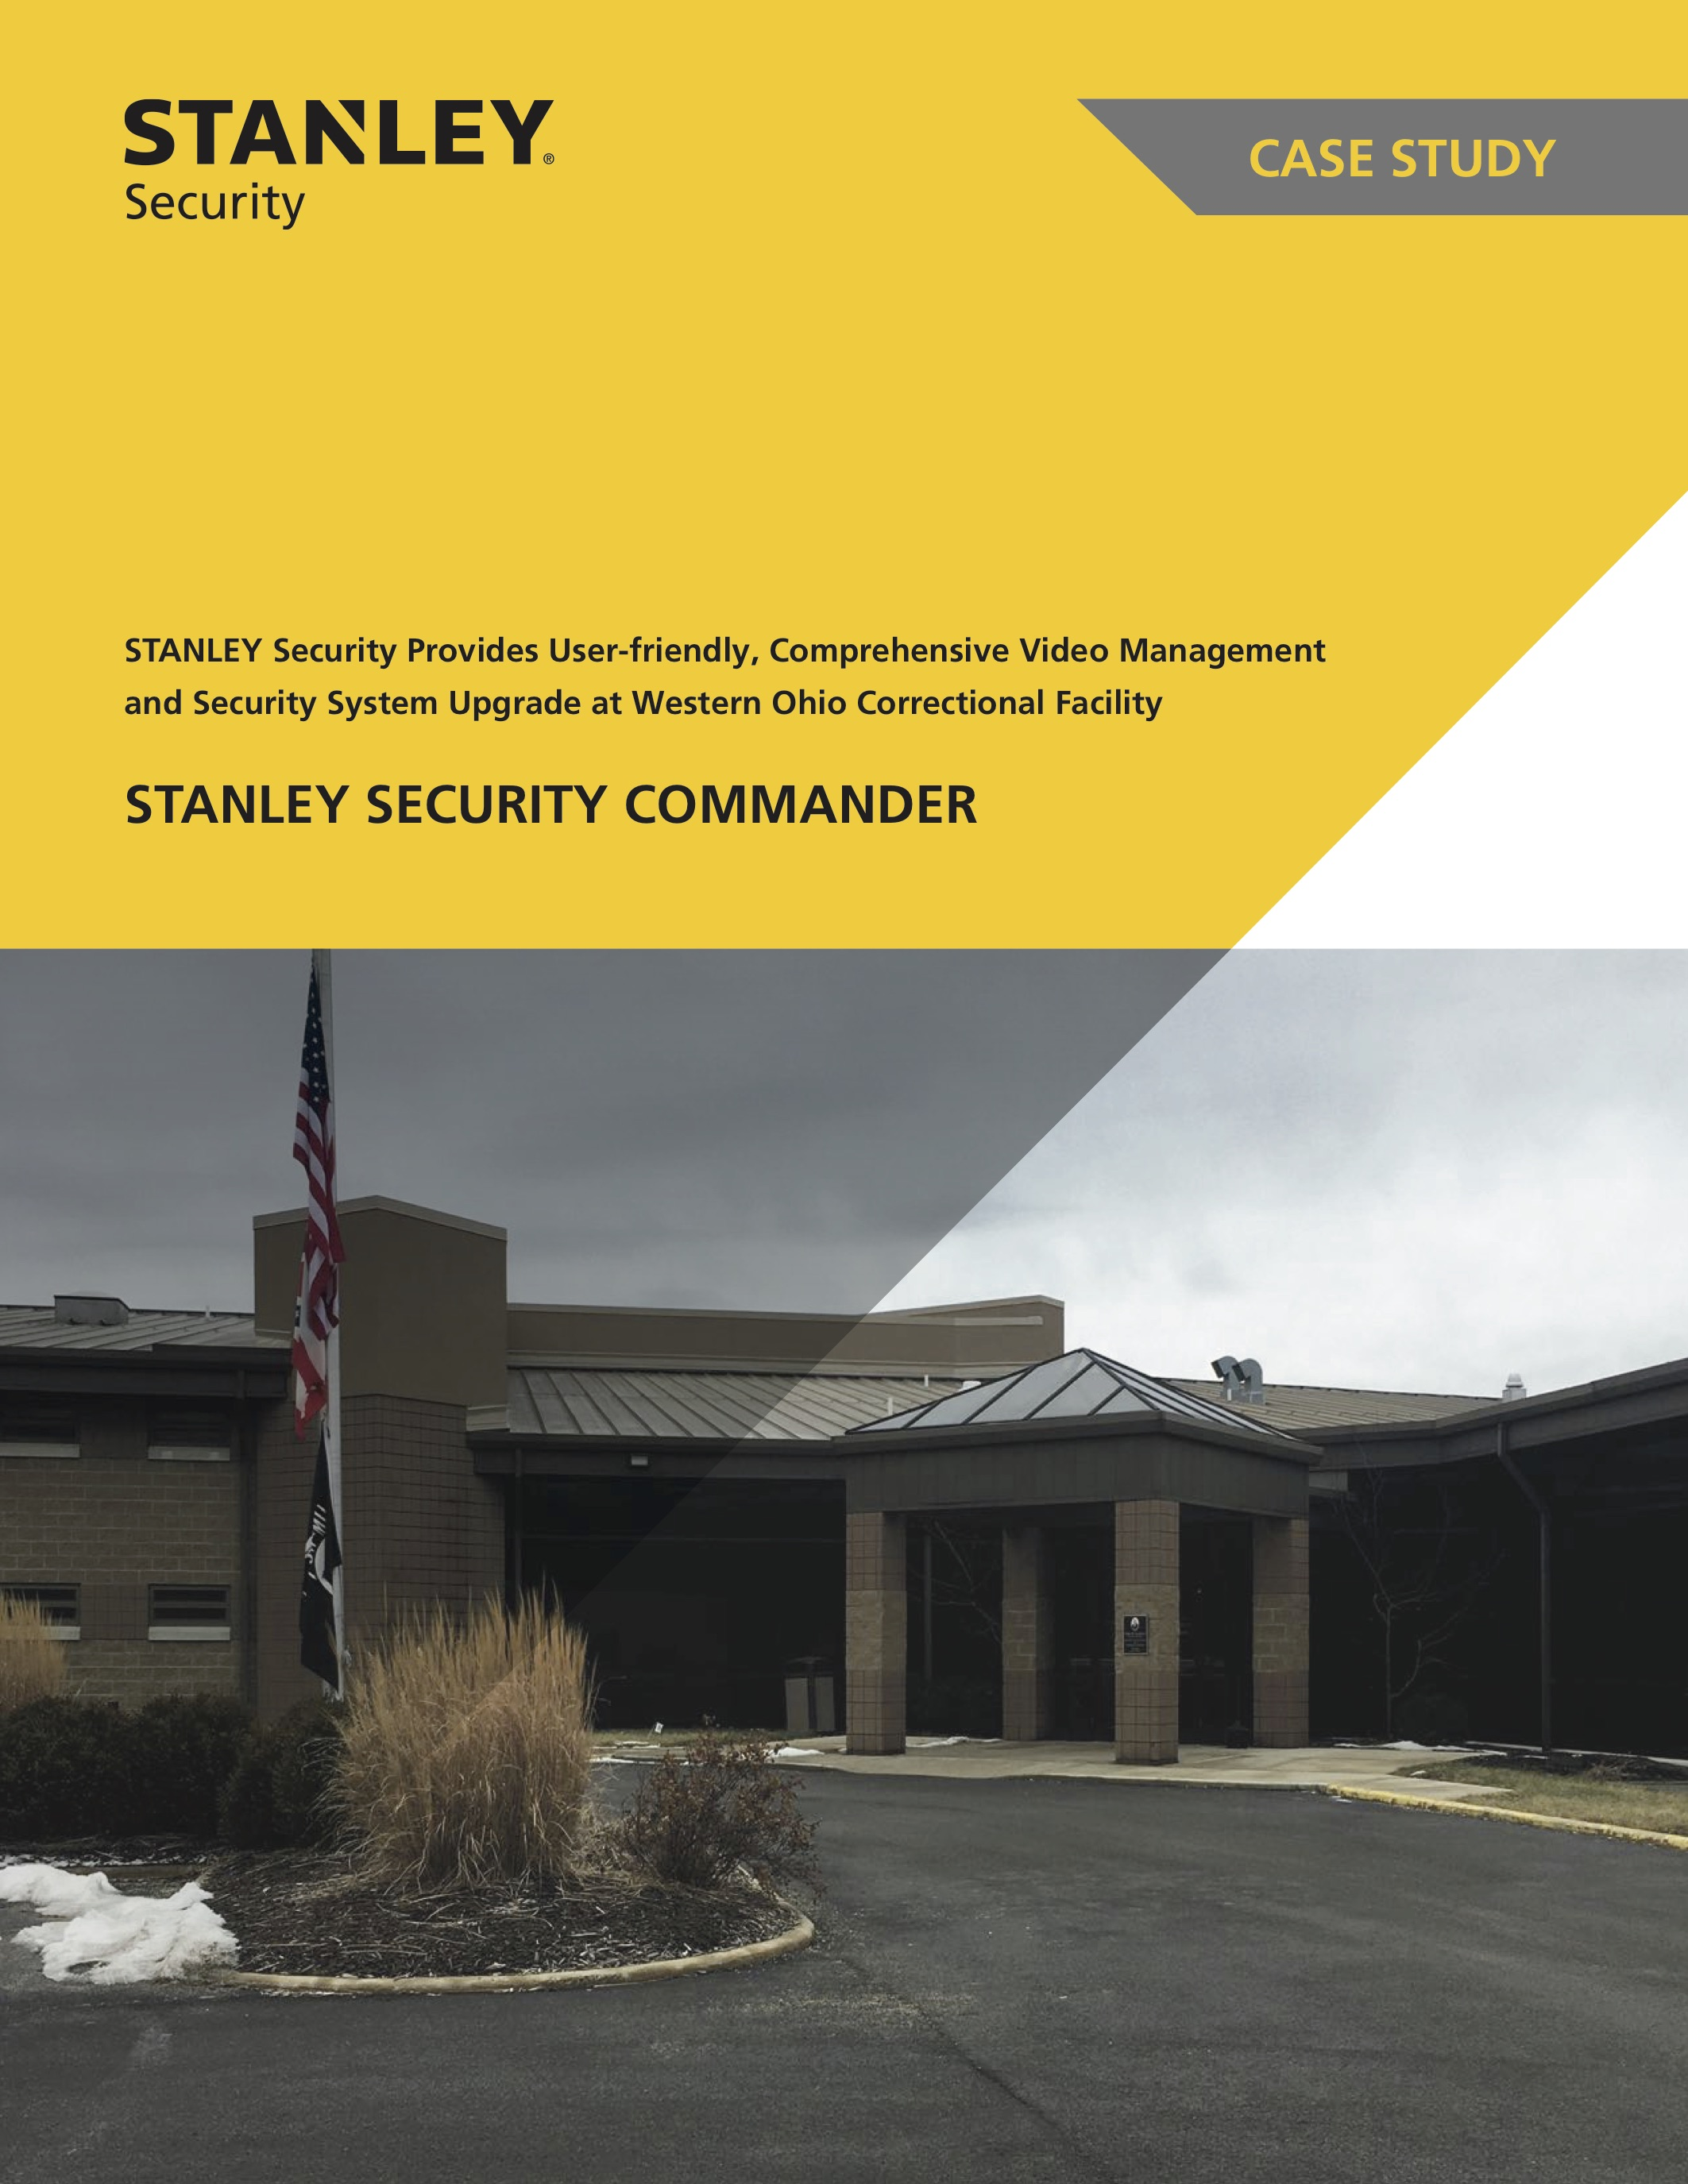 Case Studies on Successful Security System Integrations